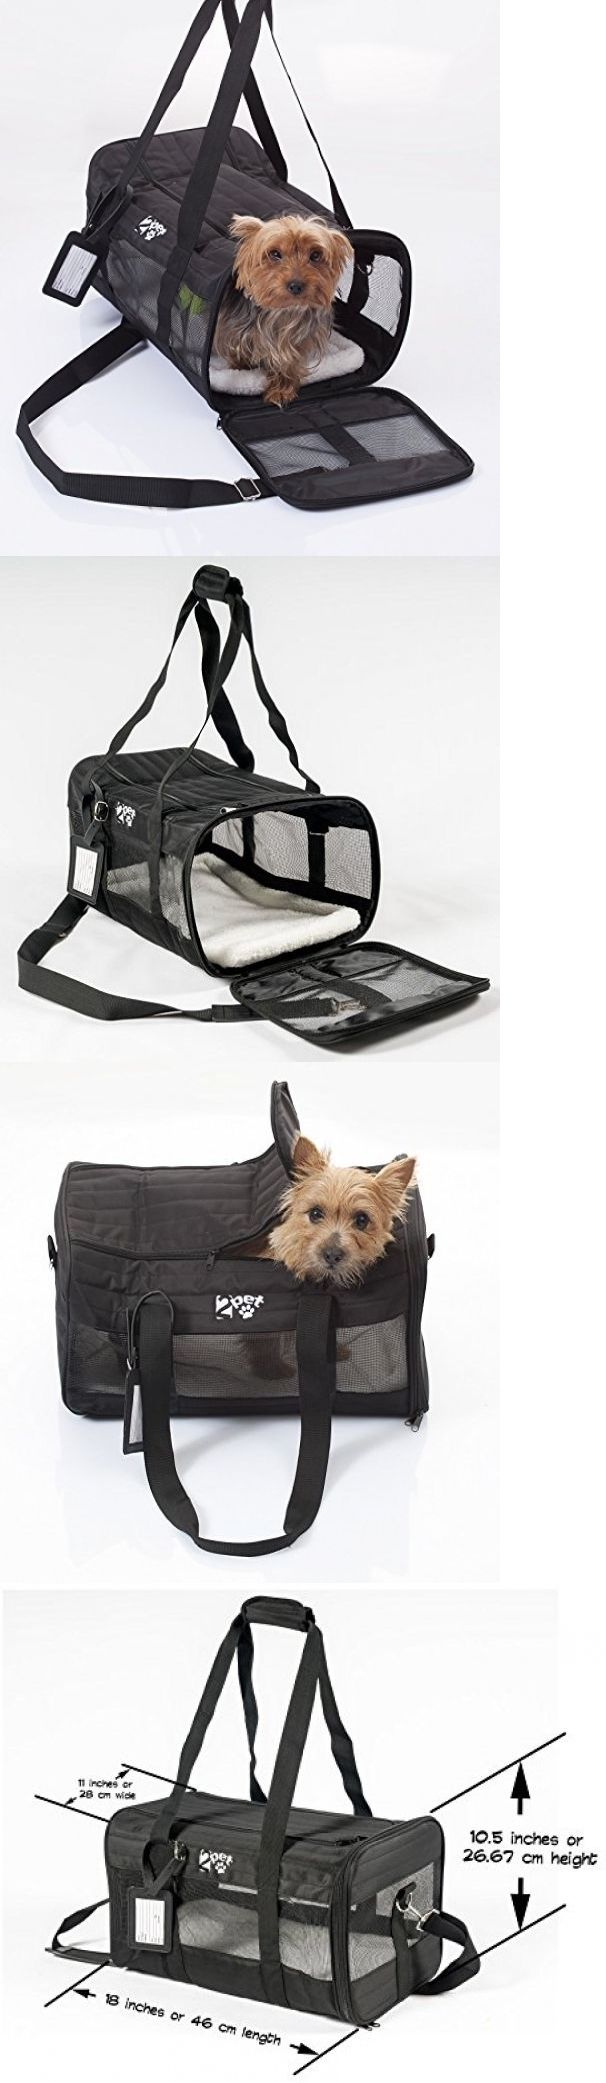 Carriers and Totes 177788: Dog Cat Pet Airline Approved Carrier Cabin Travel Crate Cage Kennel Transport -> BUY IT NOW ONLY: $32.97 on eBay!